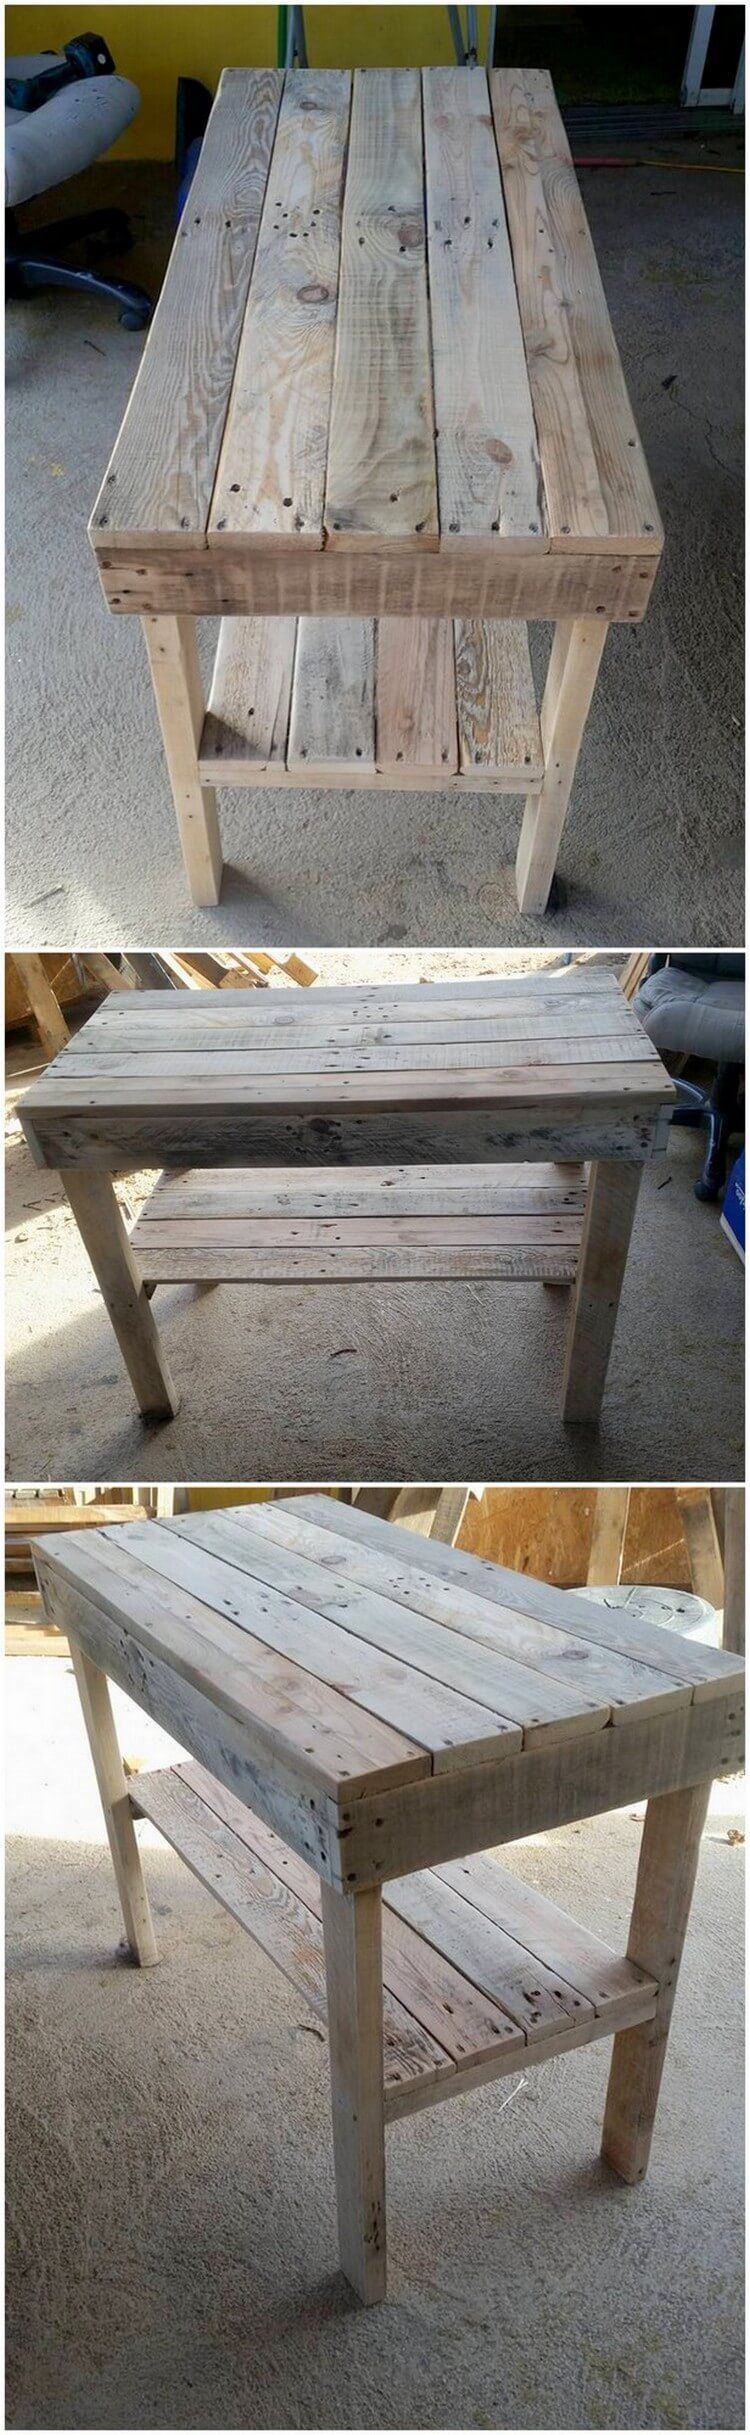 reclaimed wood pallet bench. Superb Ideas With Recycled Wood Pallets Reclaimed Pallet Bench